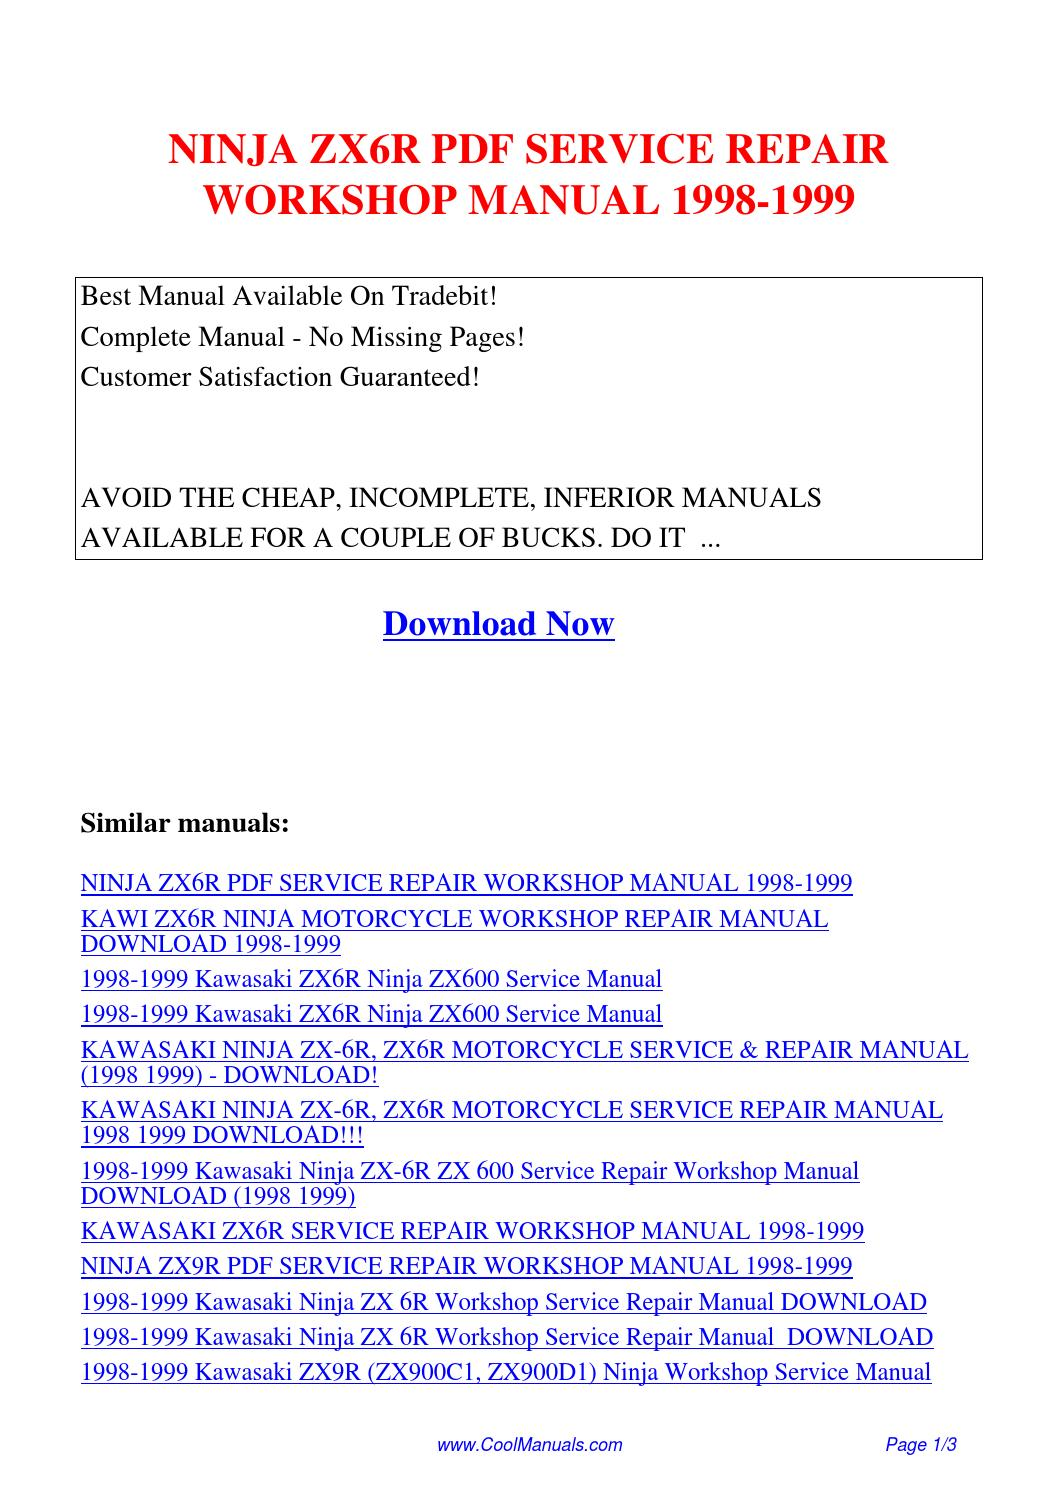 NINJA ZX6R SERVICE REPAIR WORKSHOP MANUAL 1998-1999.pdf by Guang Hui - issuu